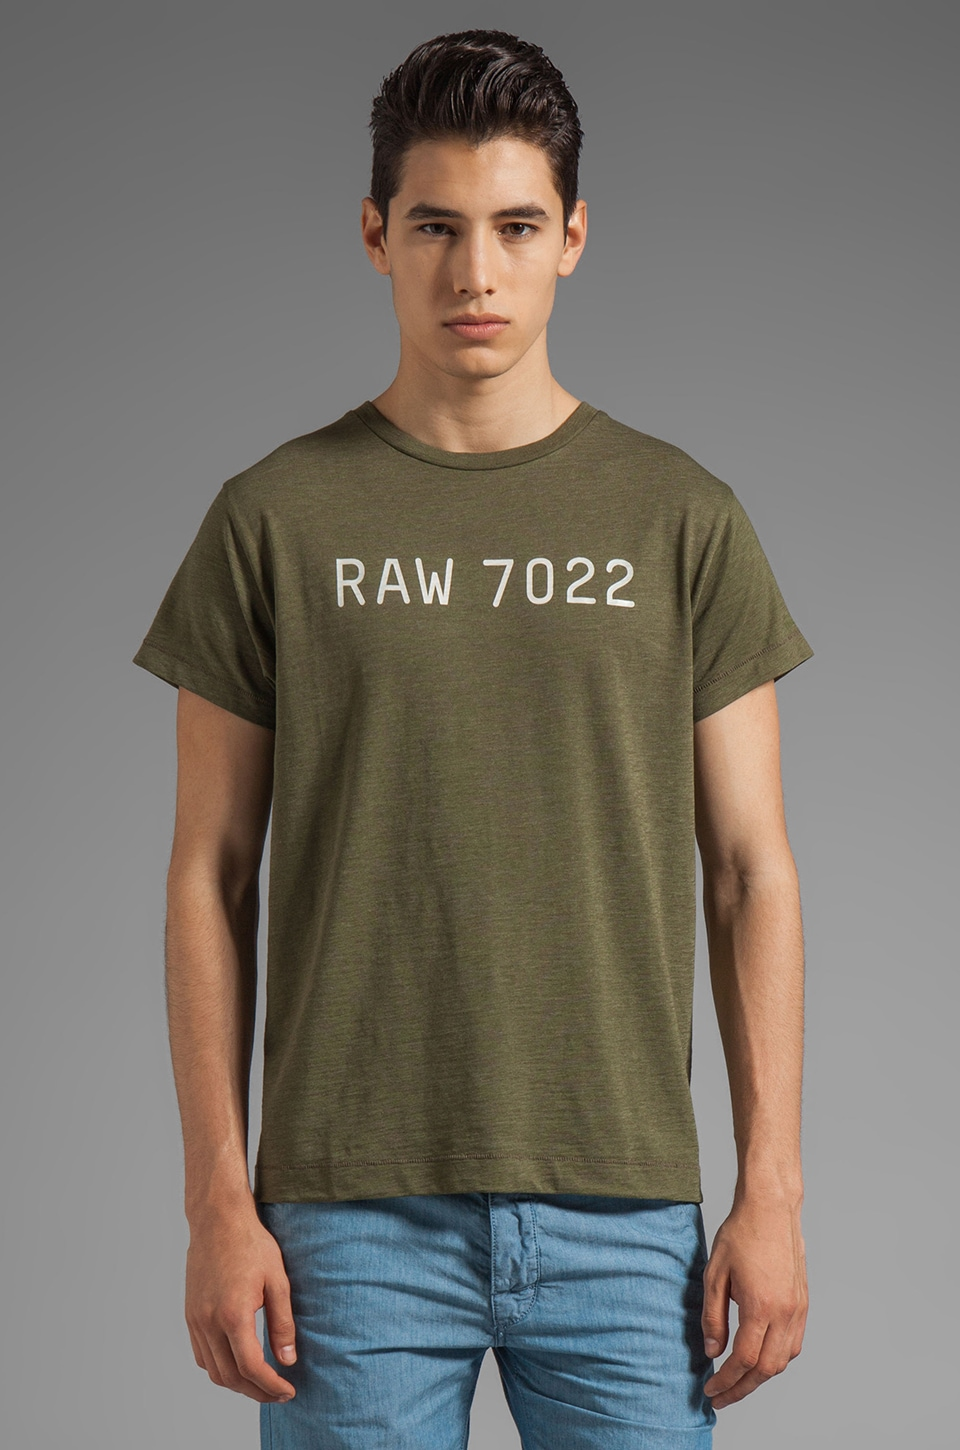 G-Star Real Short Sleeve Tee in Sage